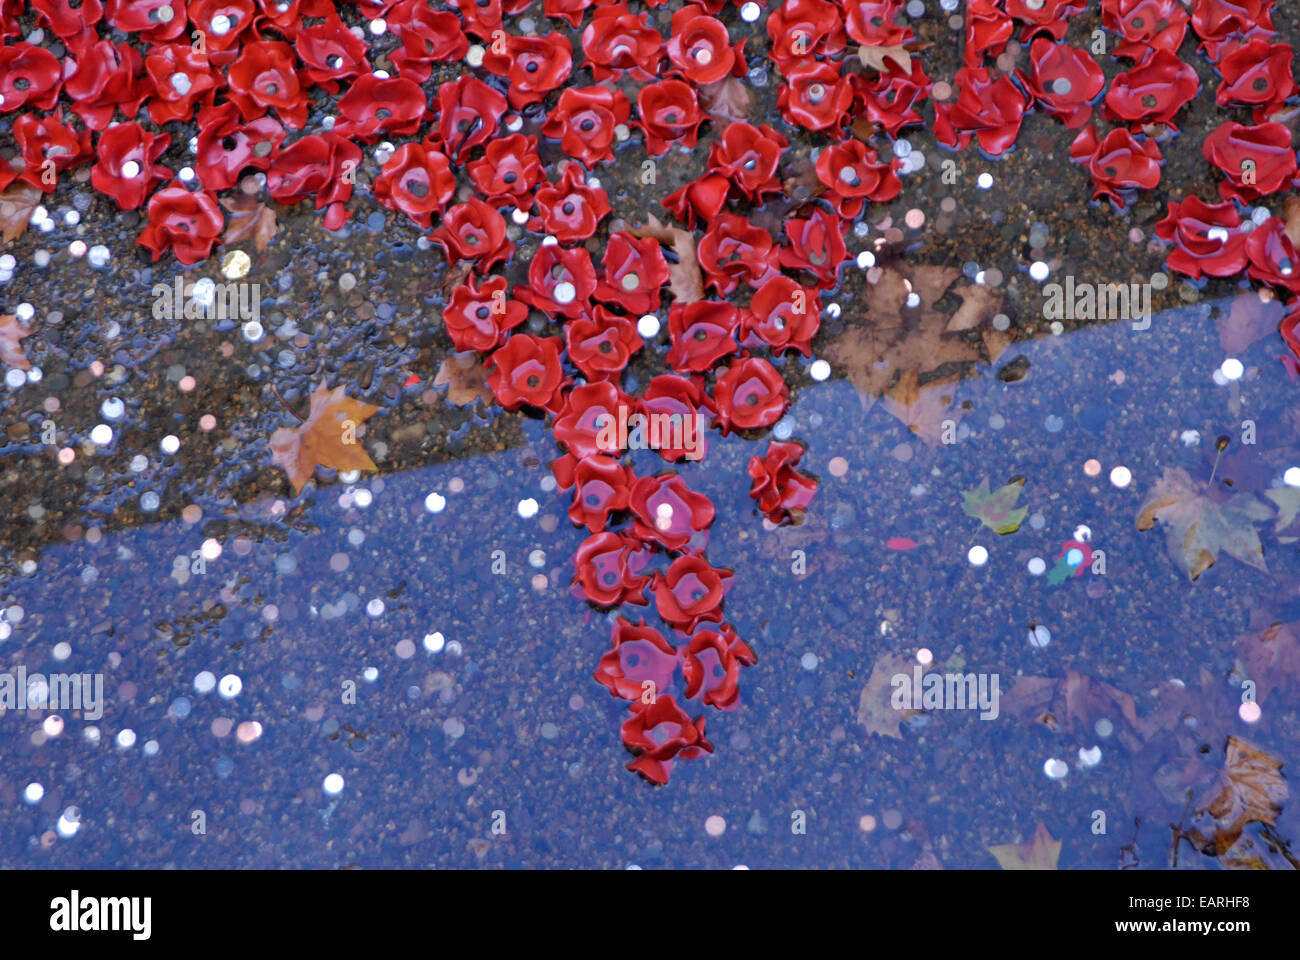 Some of the 888,246 ceramic poppies in the moat  at The Tower of London art installation in rainwater, fallen leaves - Stock Image